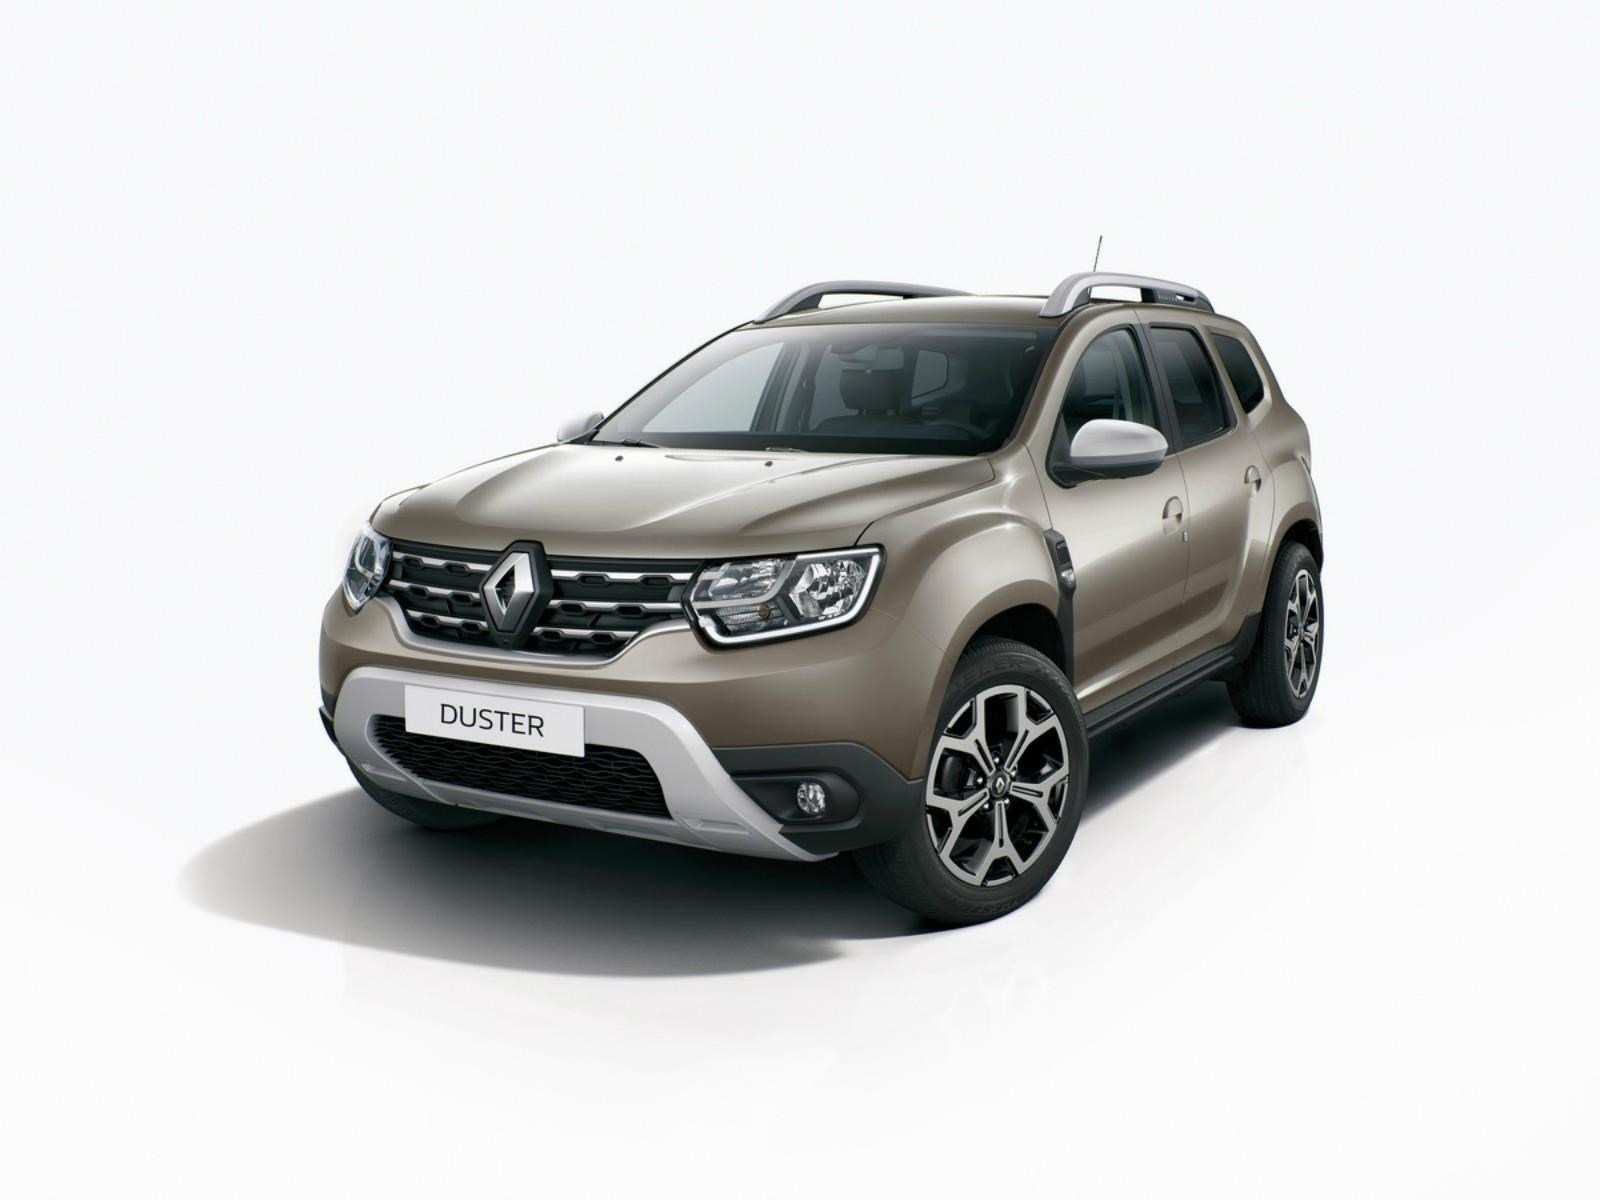 37 Best Review Renault Duster 2019 Colombia Exterior with Renault Duster 2019 Colombia